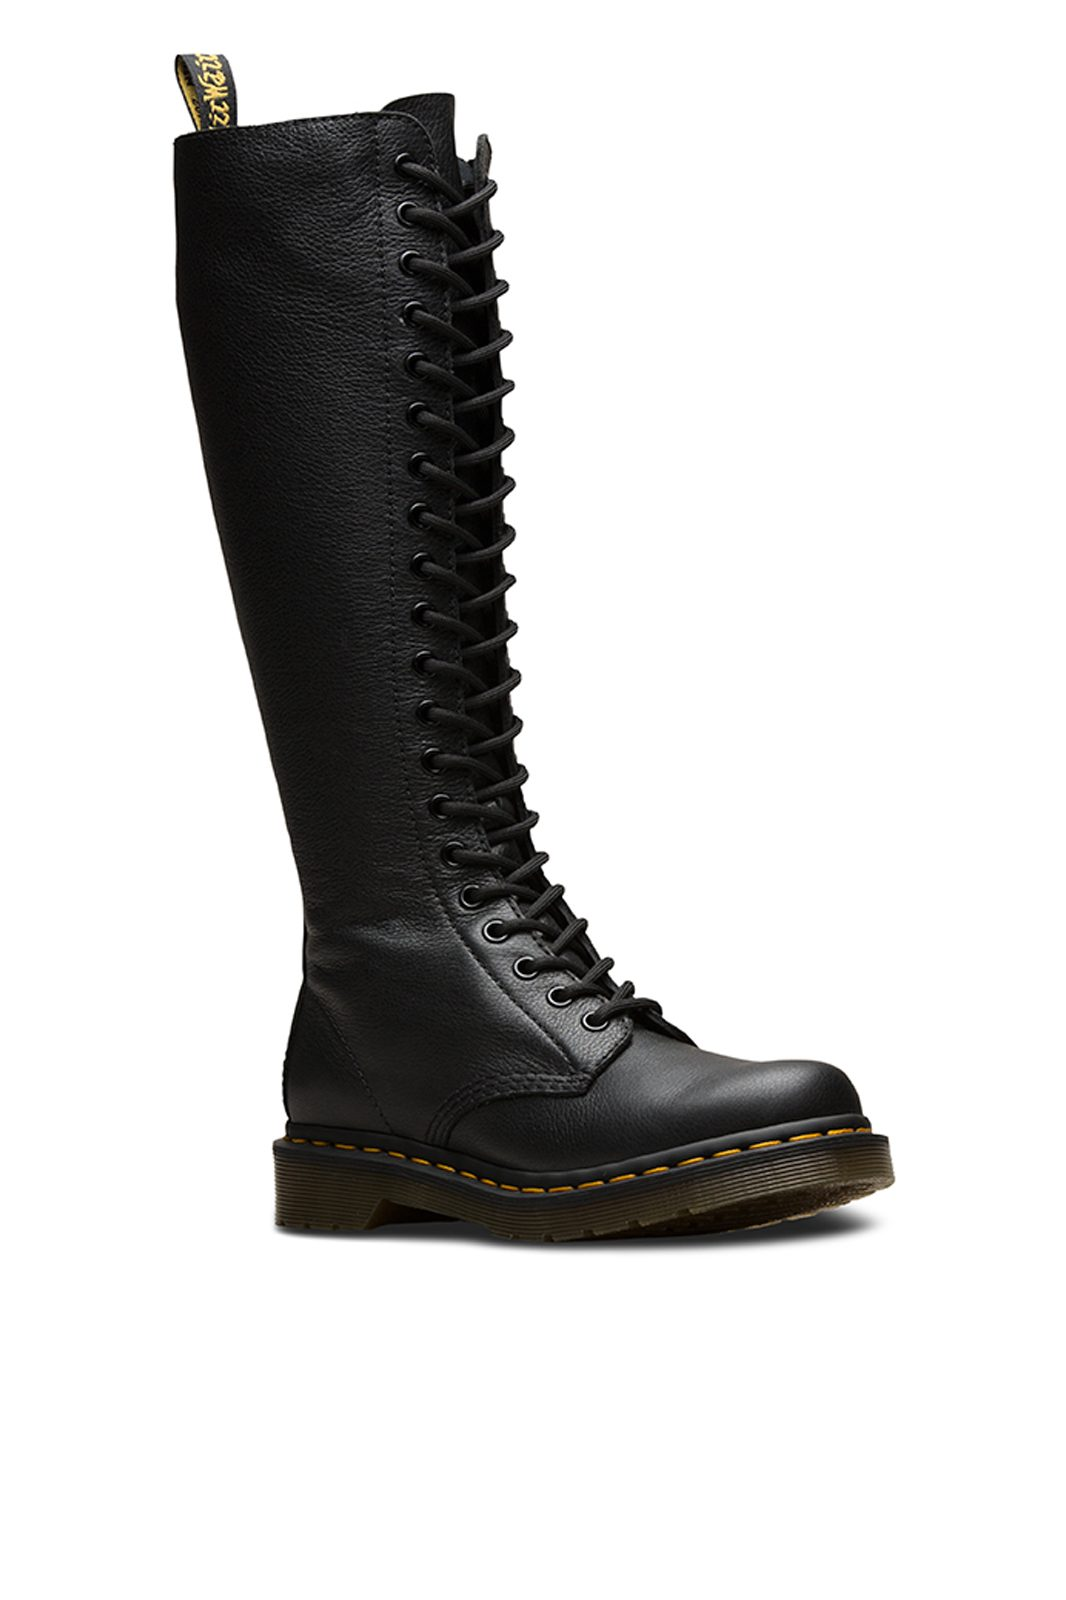 1b60 20 eye boot Black